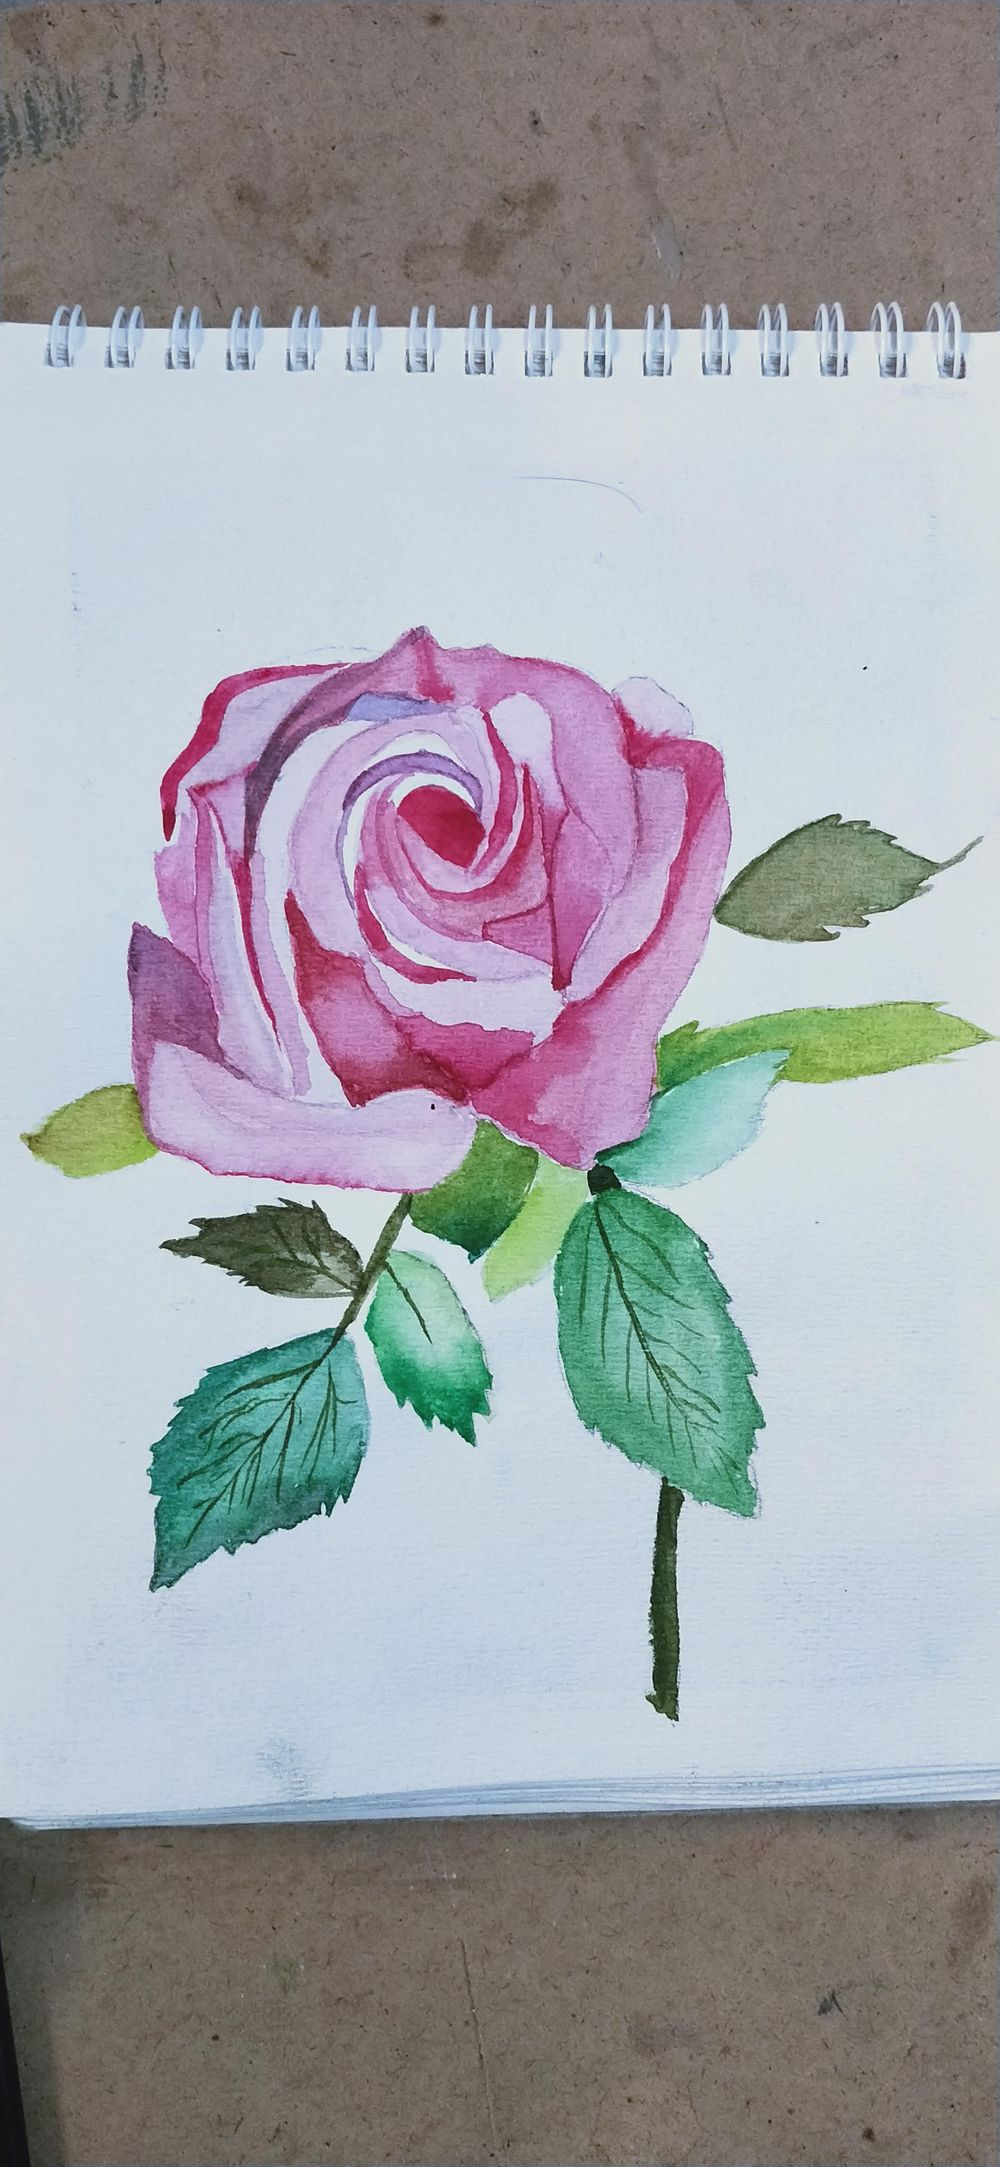 Watercolor painting of a Rose - image 1 - student project